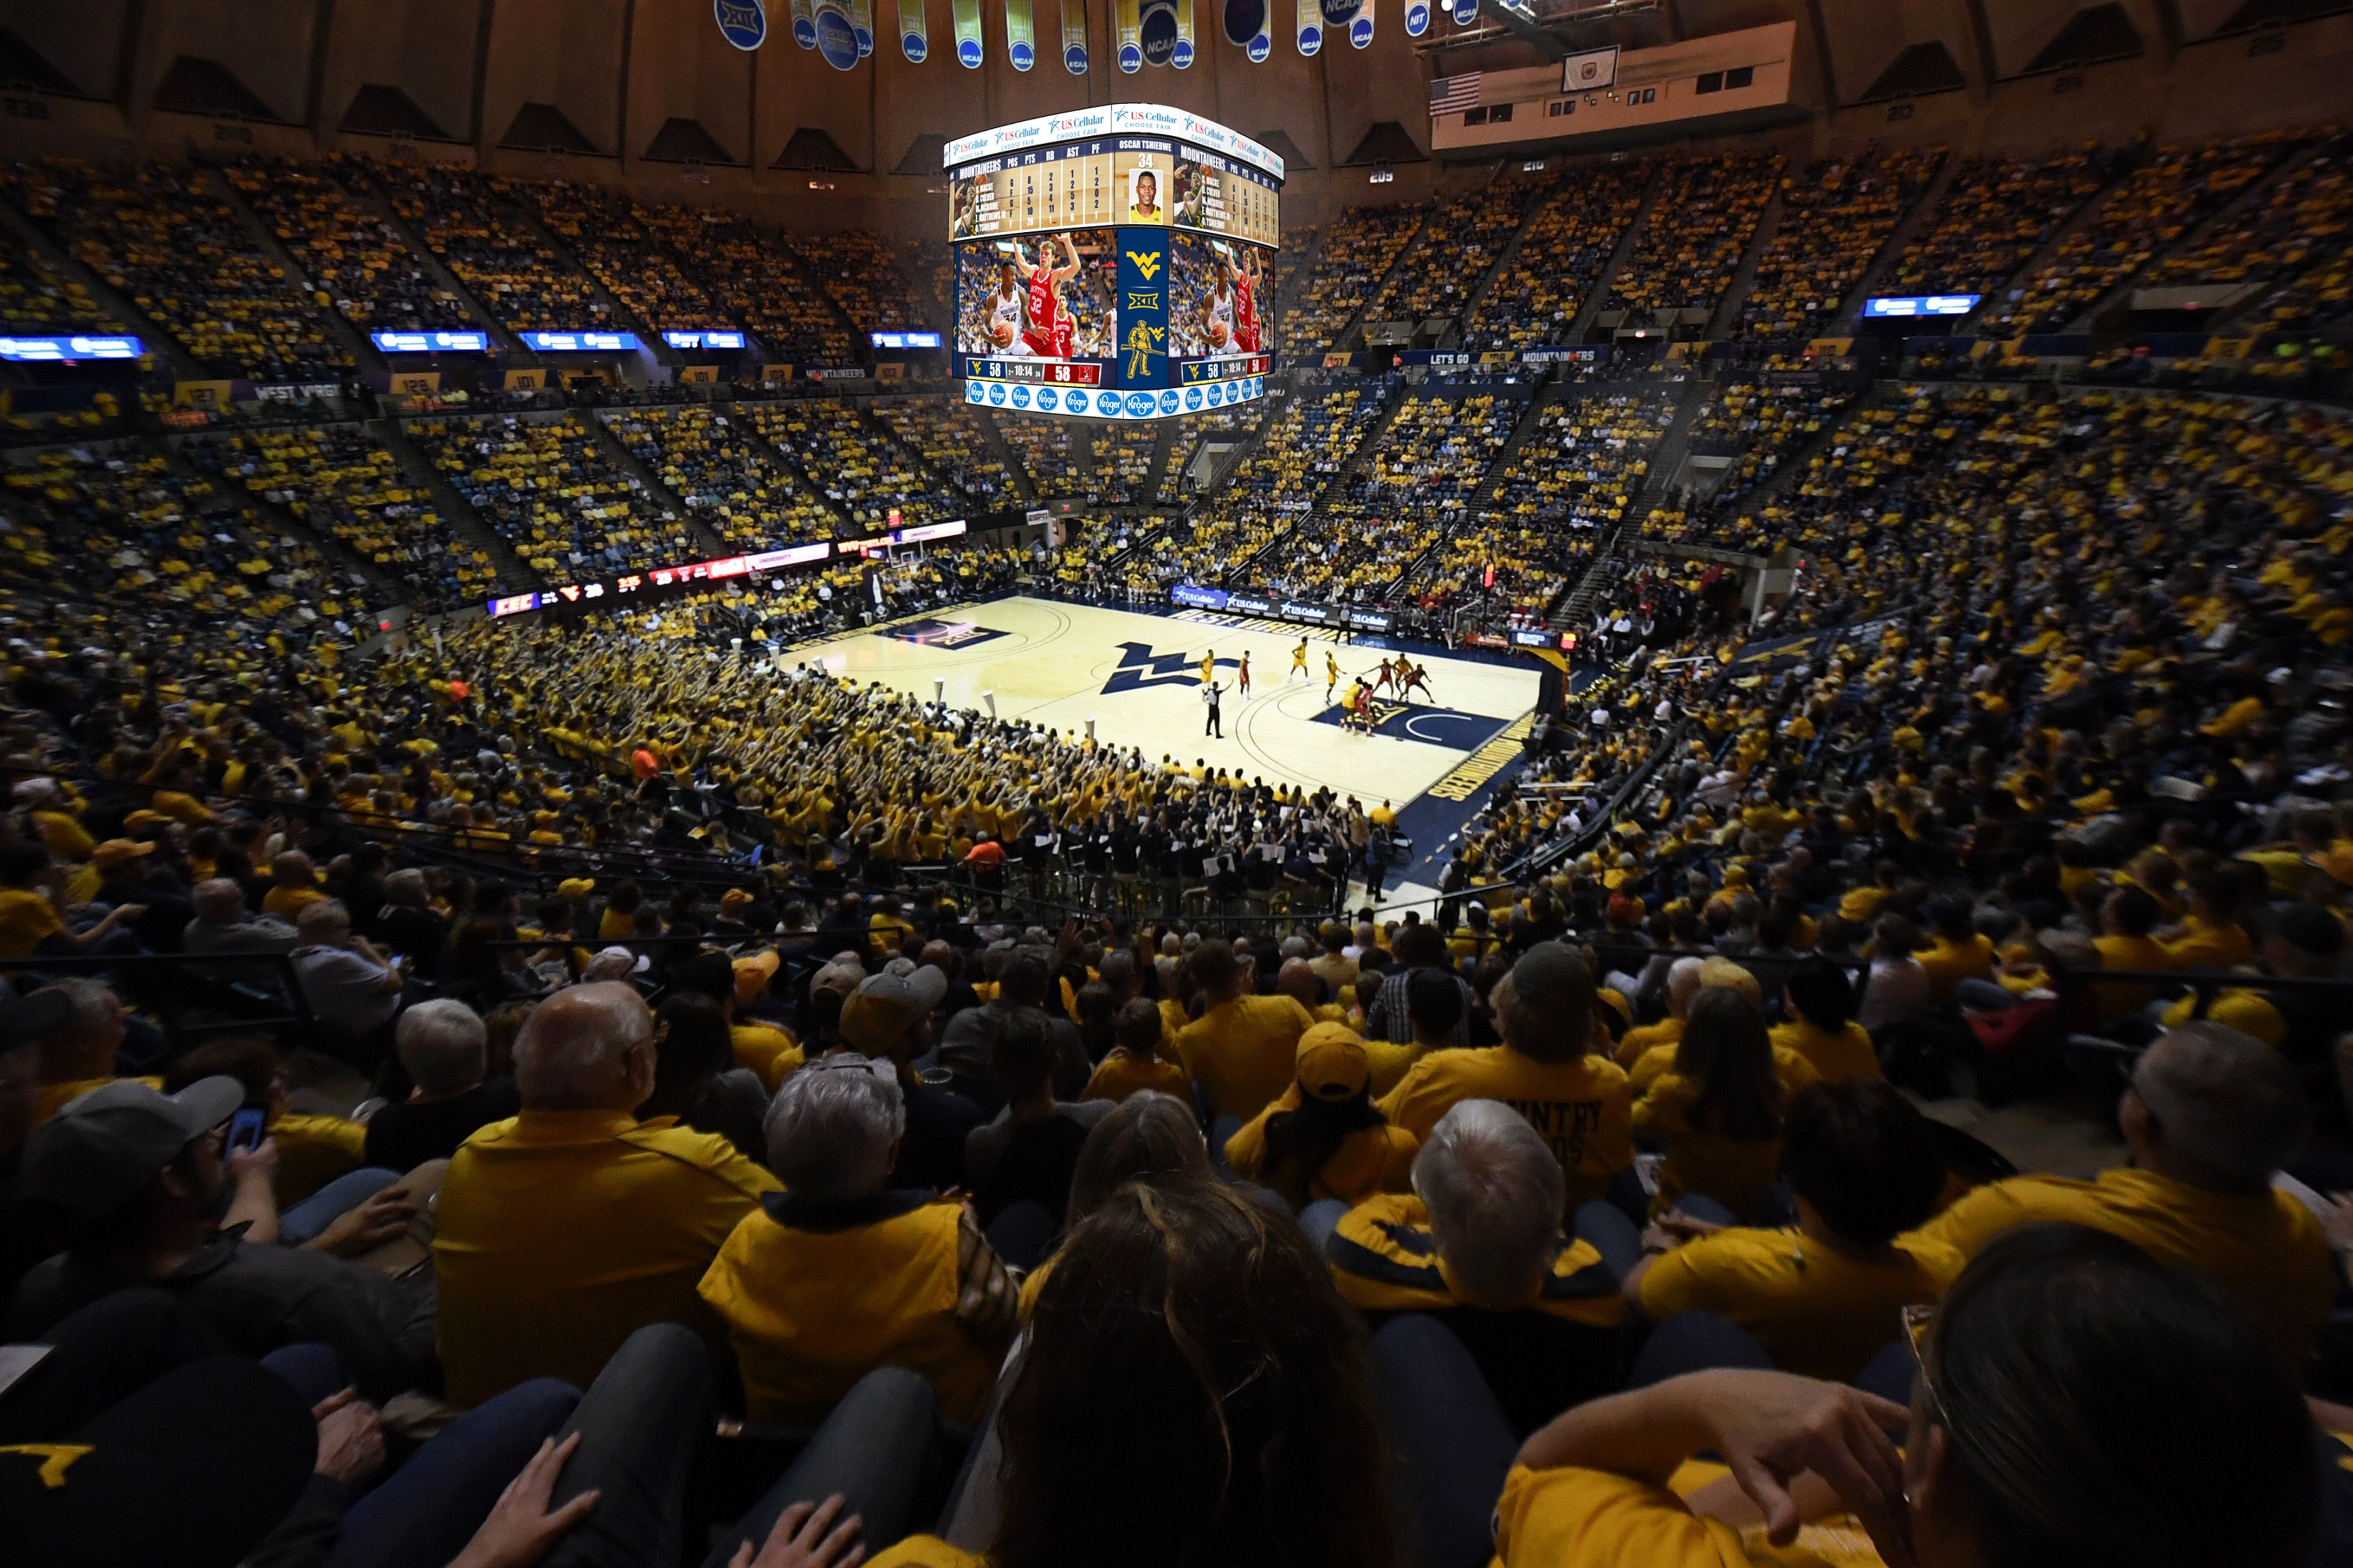 West Virginia University Teams Up with ANC to Elevate Fan Atmosphere